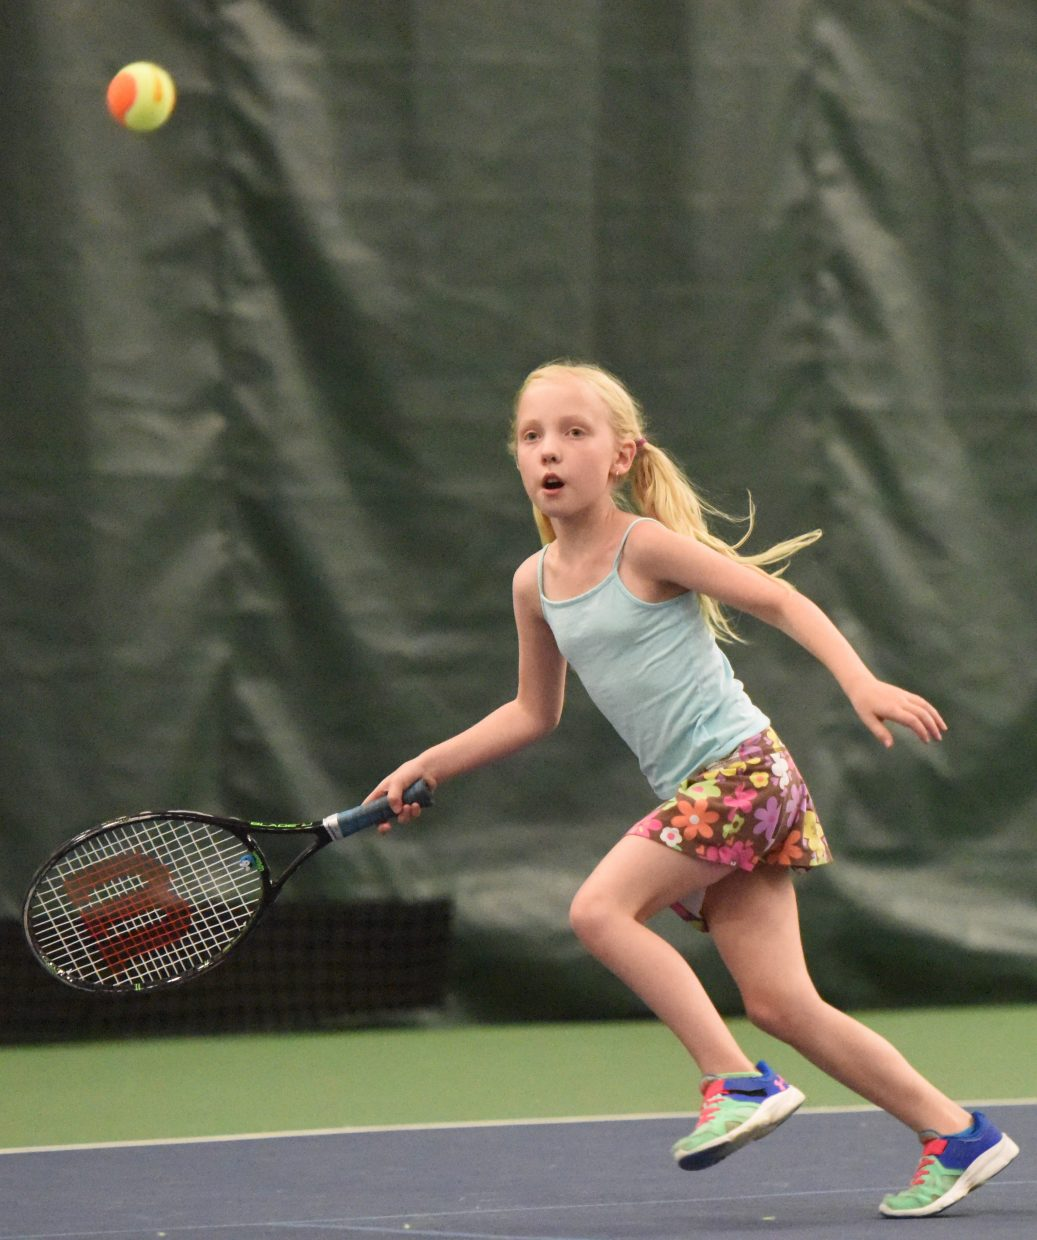 Charlotte Tegtmeyer, 9, chases down a ball Sunday at the Steamboat Tennis Association tournament.